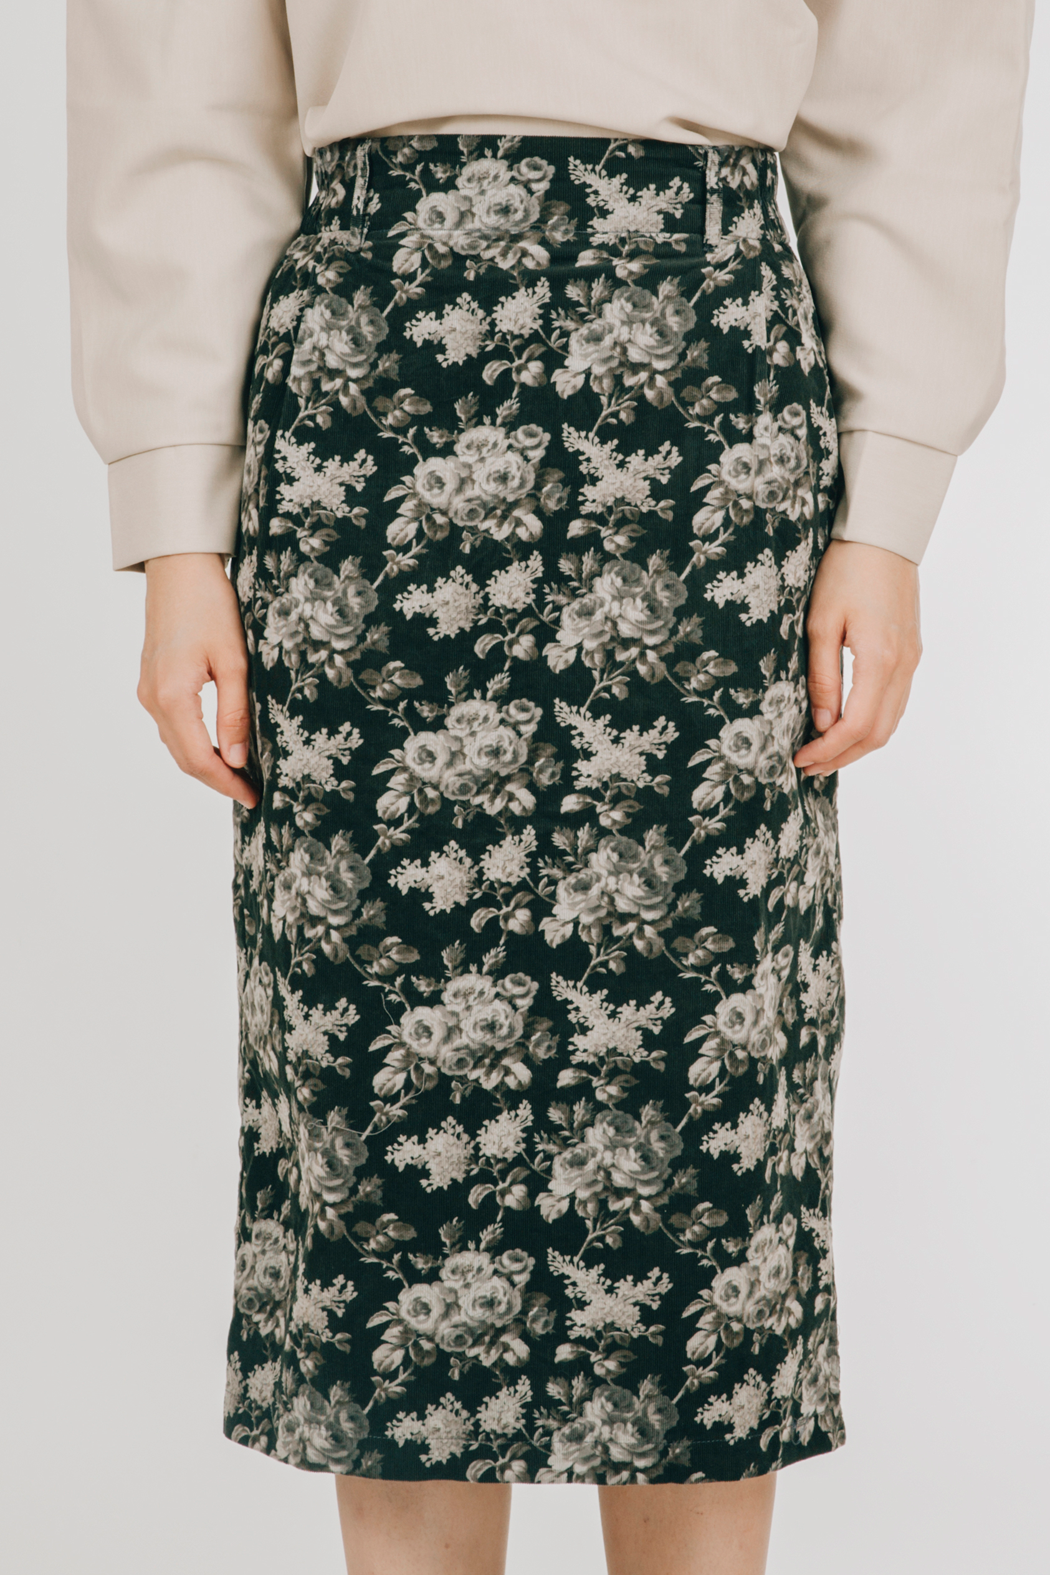 Tahan Skirt (in Black)